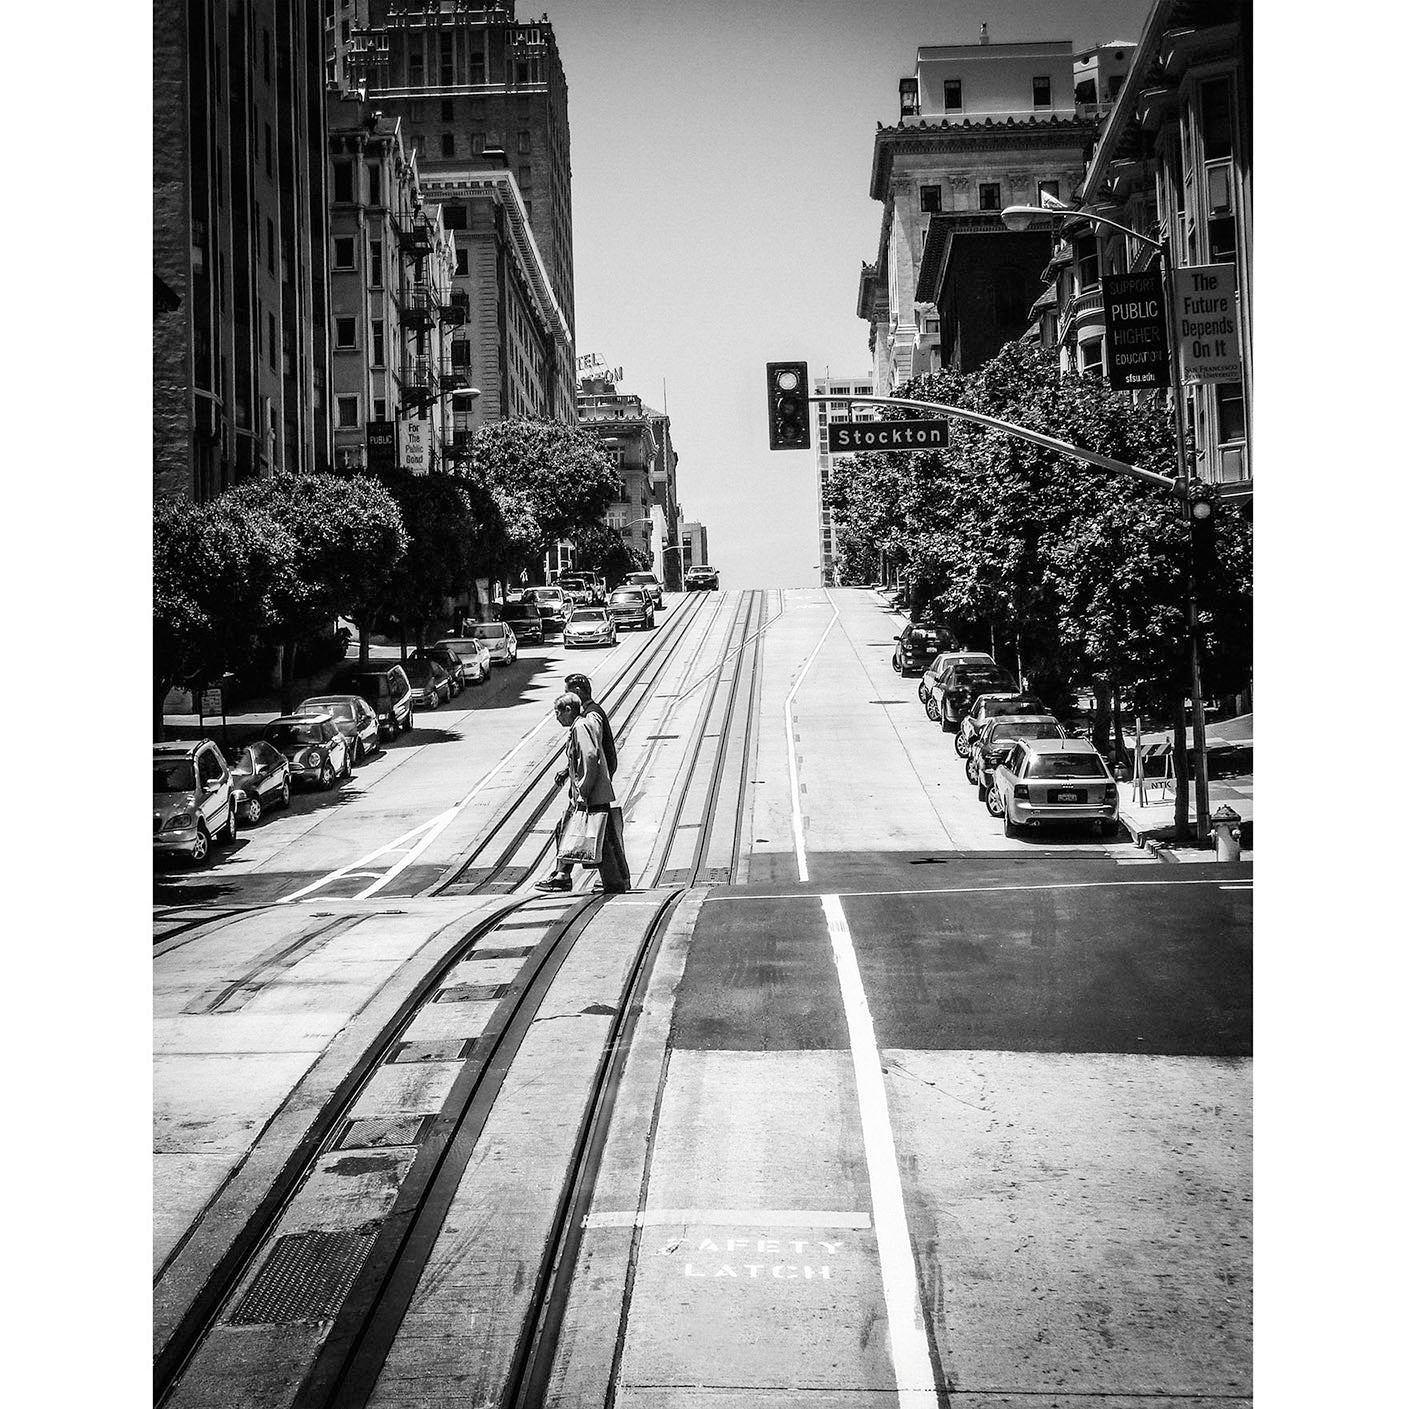 A Black and White Photography fine art print of a typical San Fransisco Street with two people crossing the road.